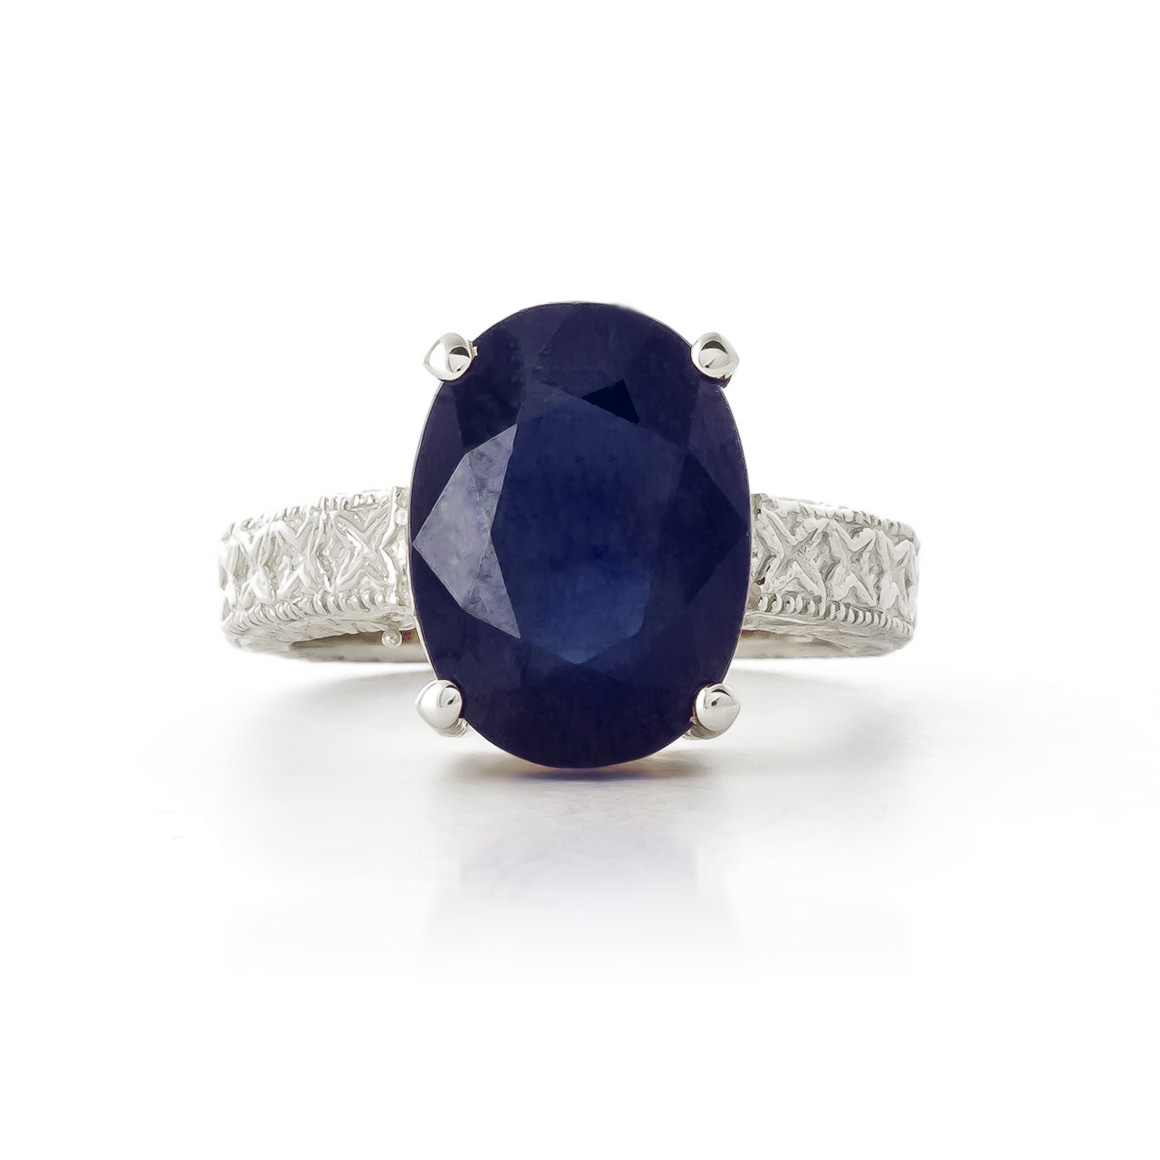 Oval Cut Sapphire Ring 8.5 ct in Sterling Silver